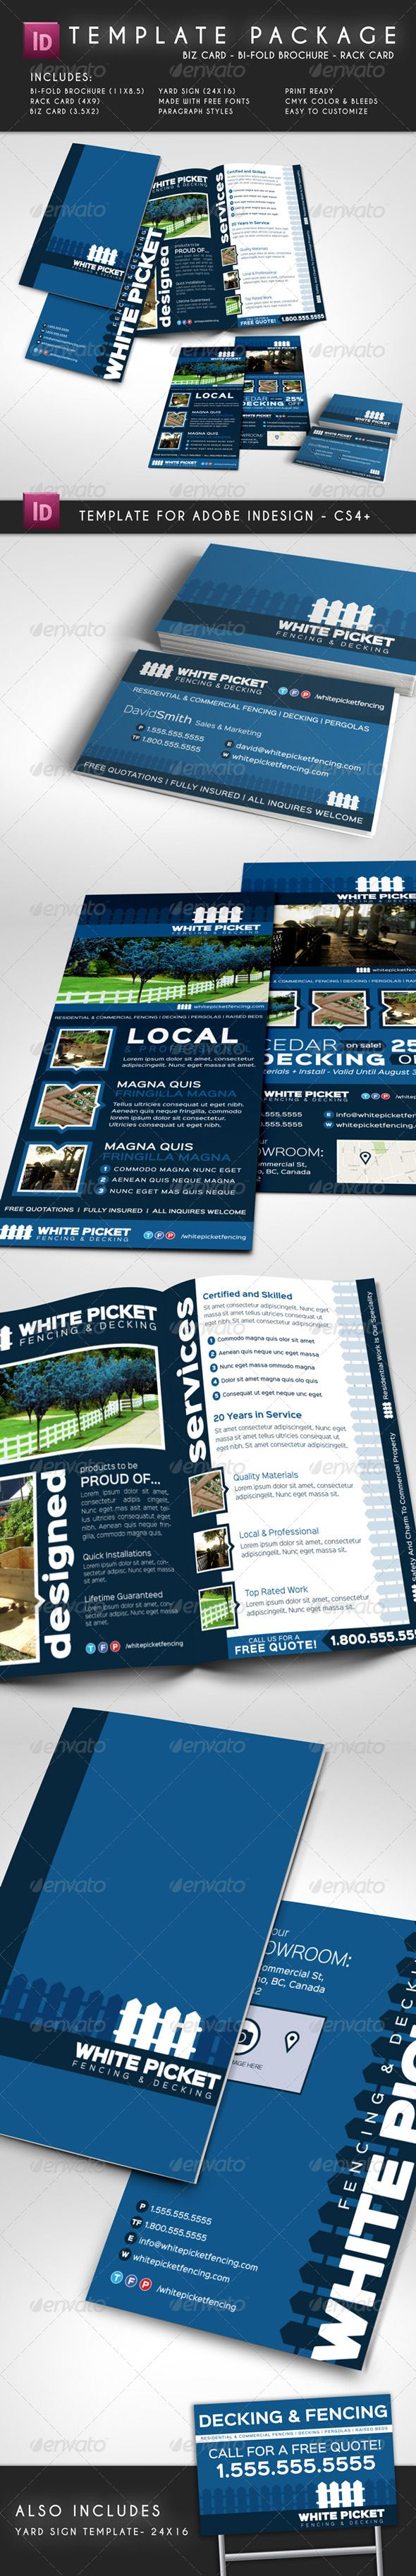 Template Package  Brochure  Rack Card  Biz Card  Brochures